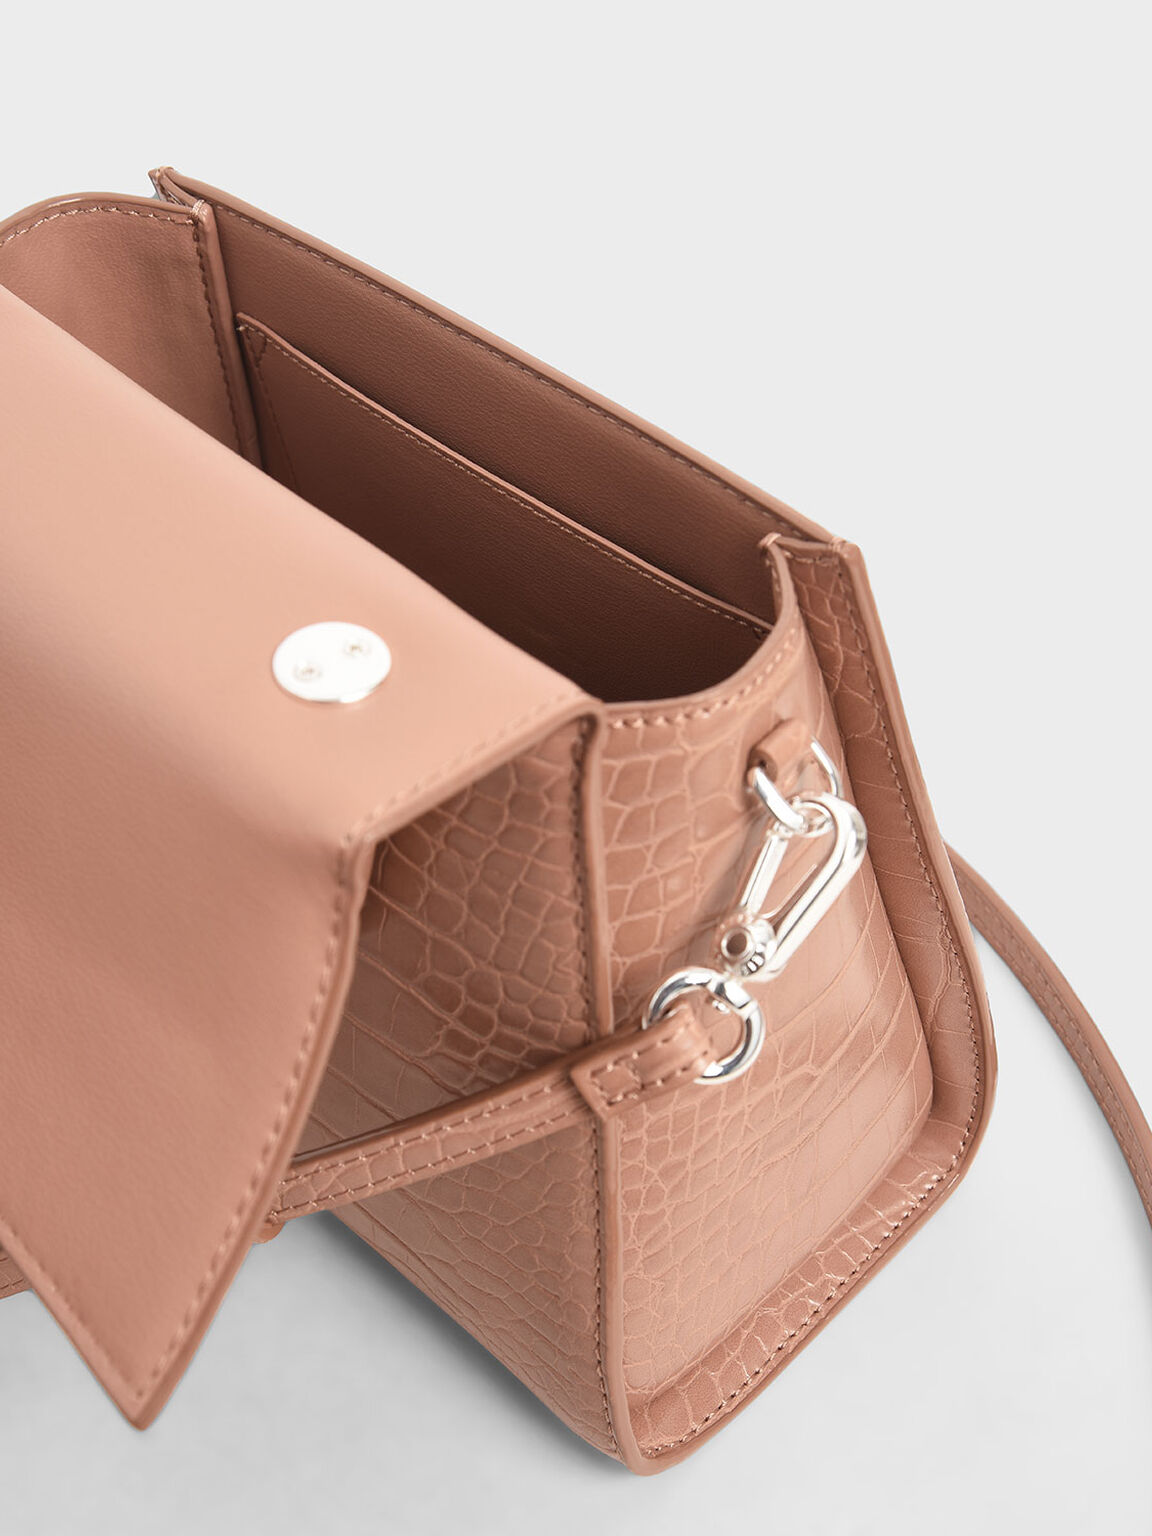 Croc-Effect Structured Bag, Blush, hi-res